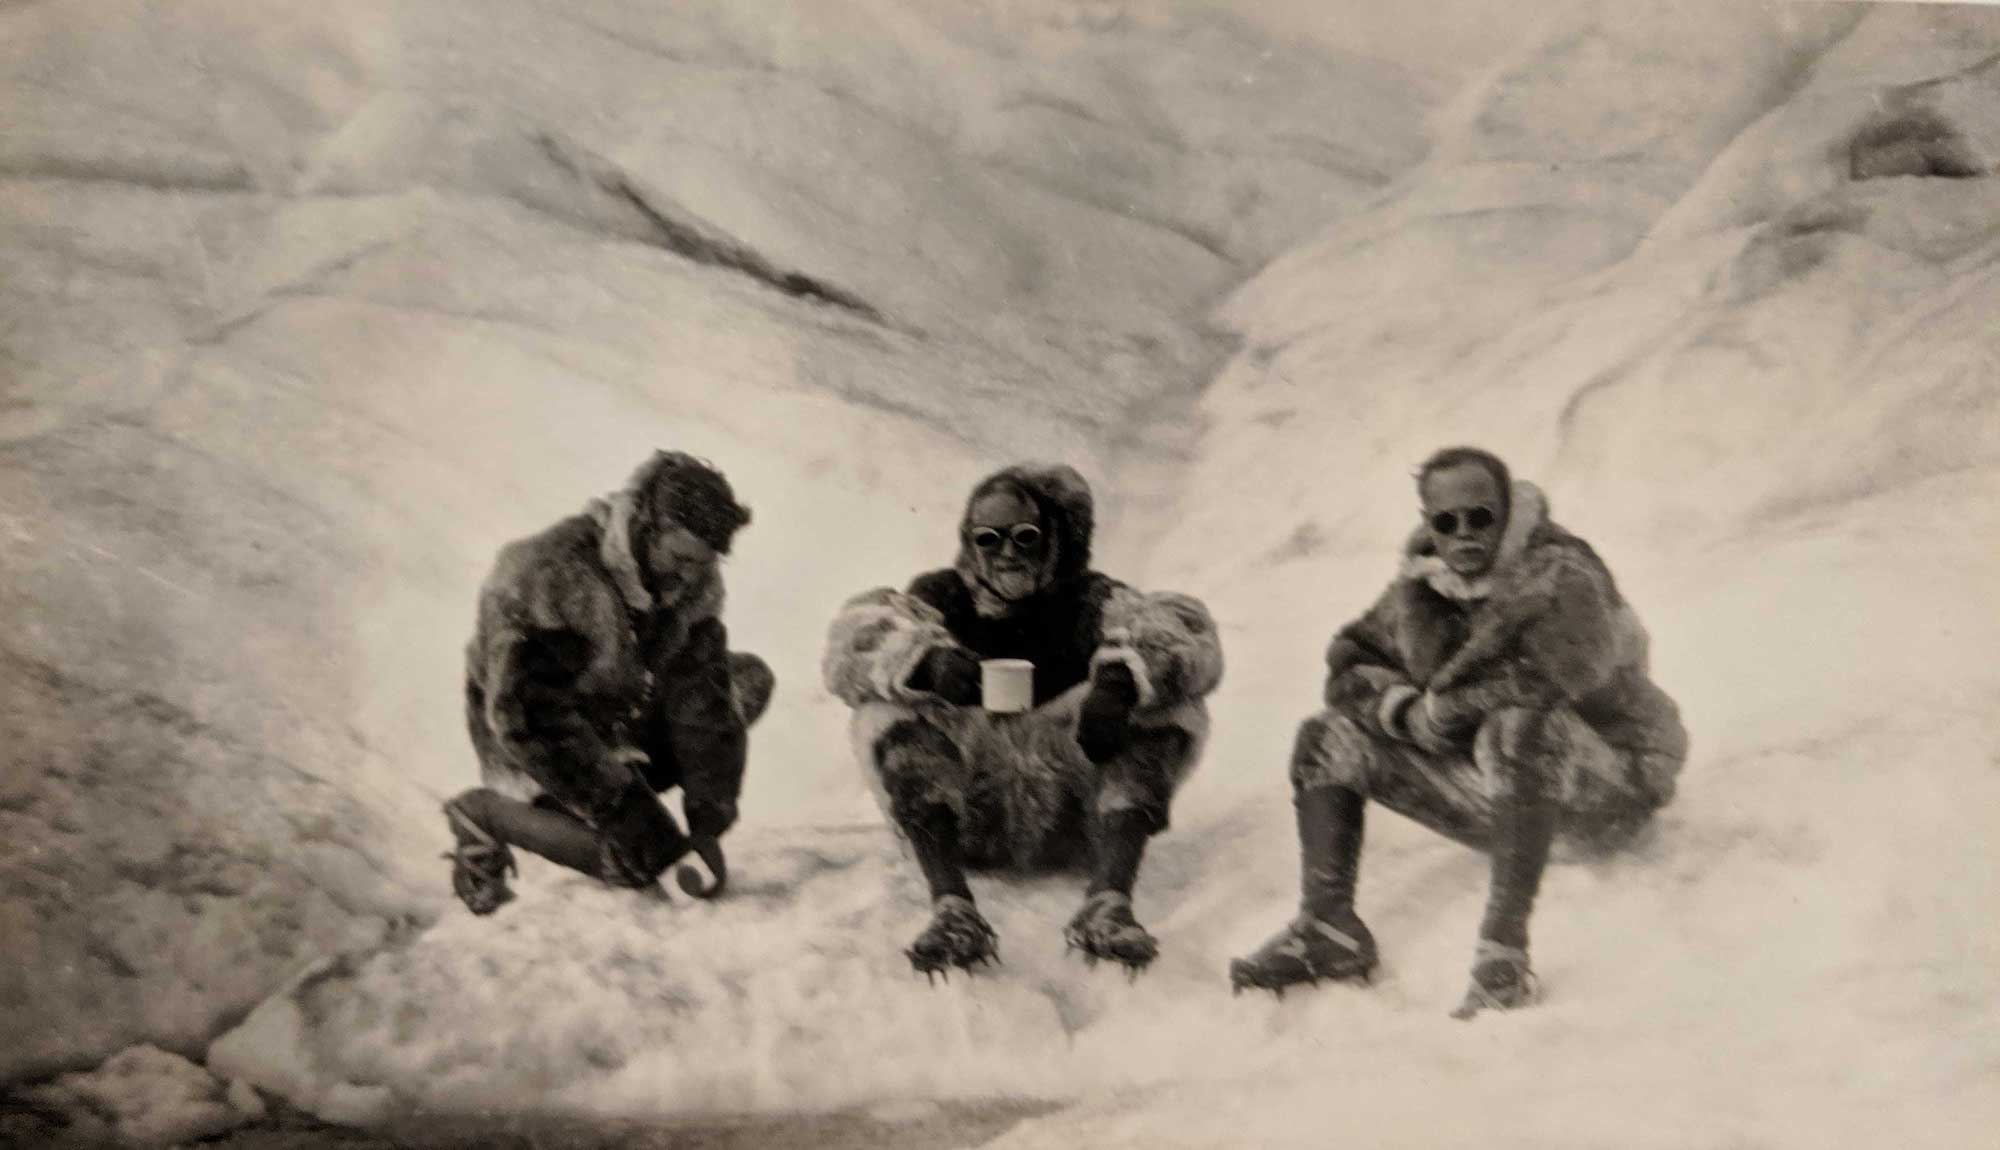 Taking a break. Greenland, 1926.